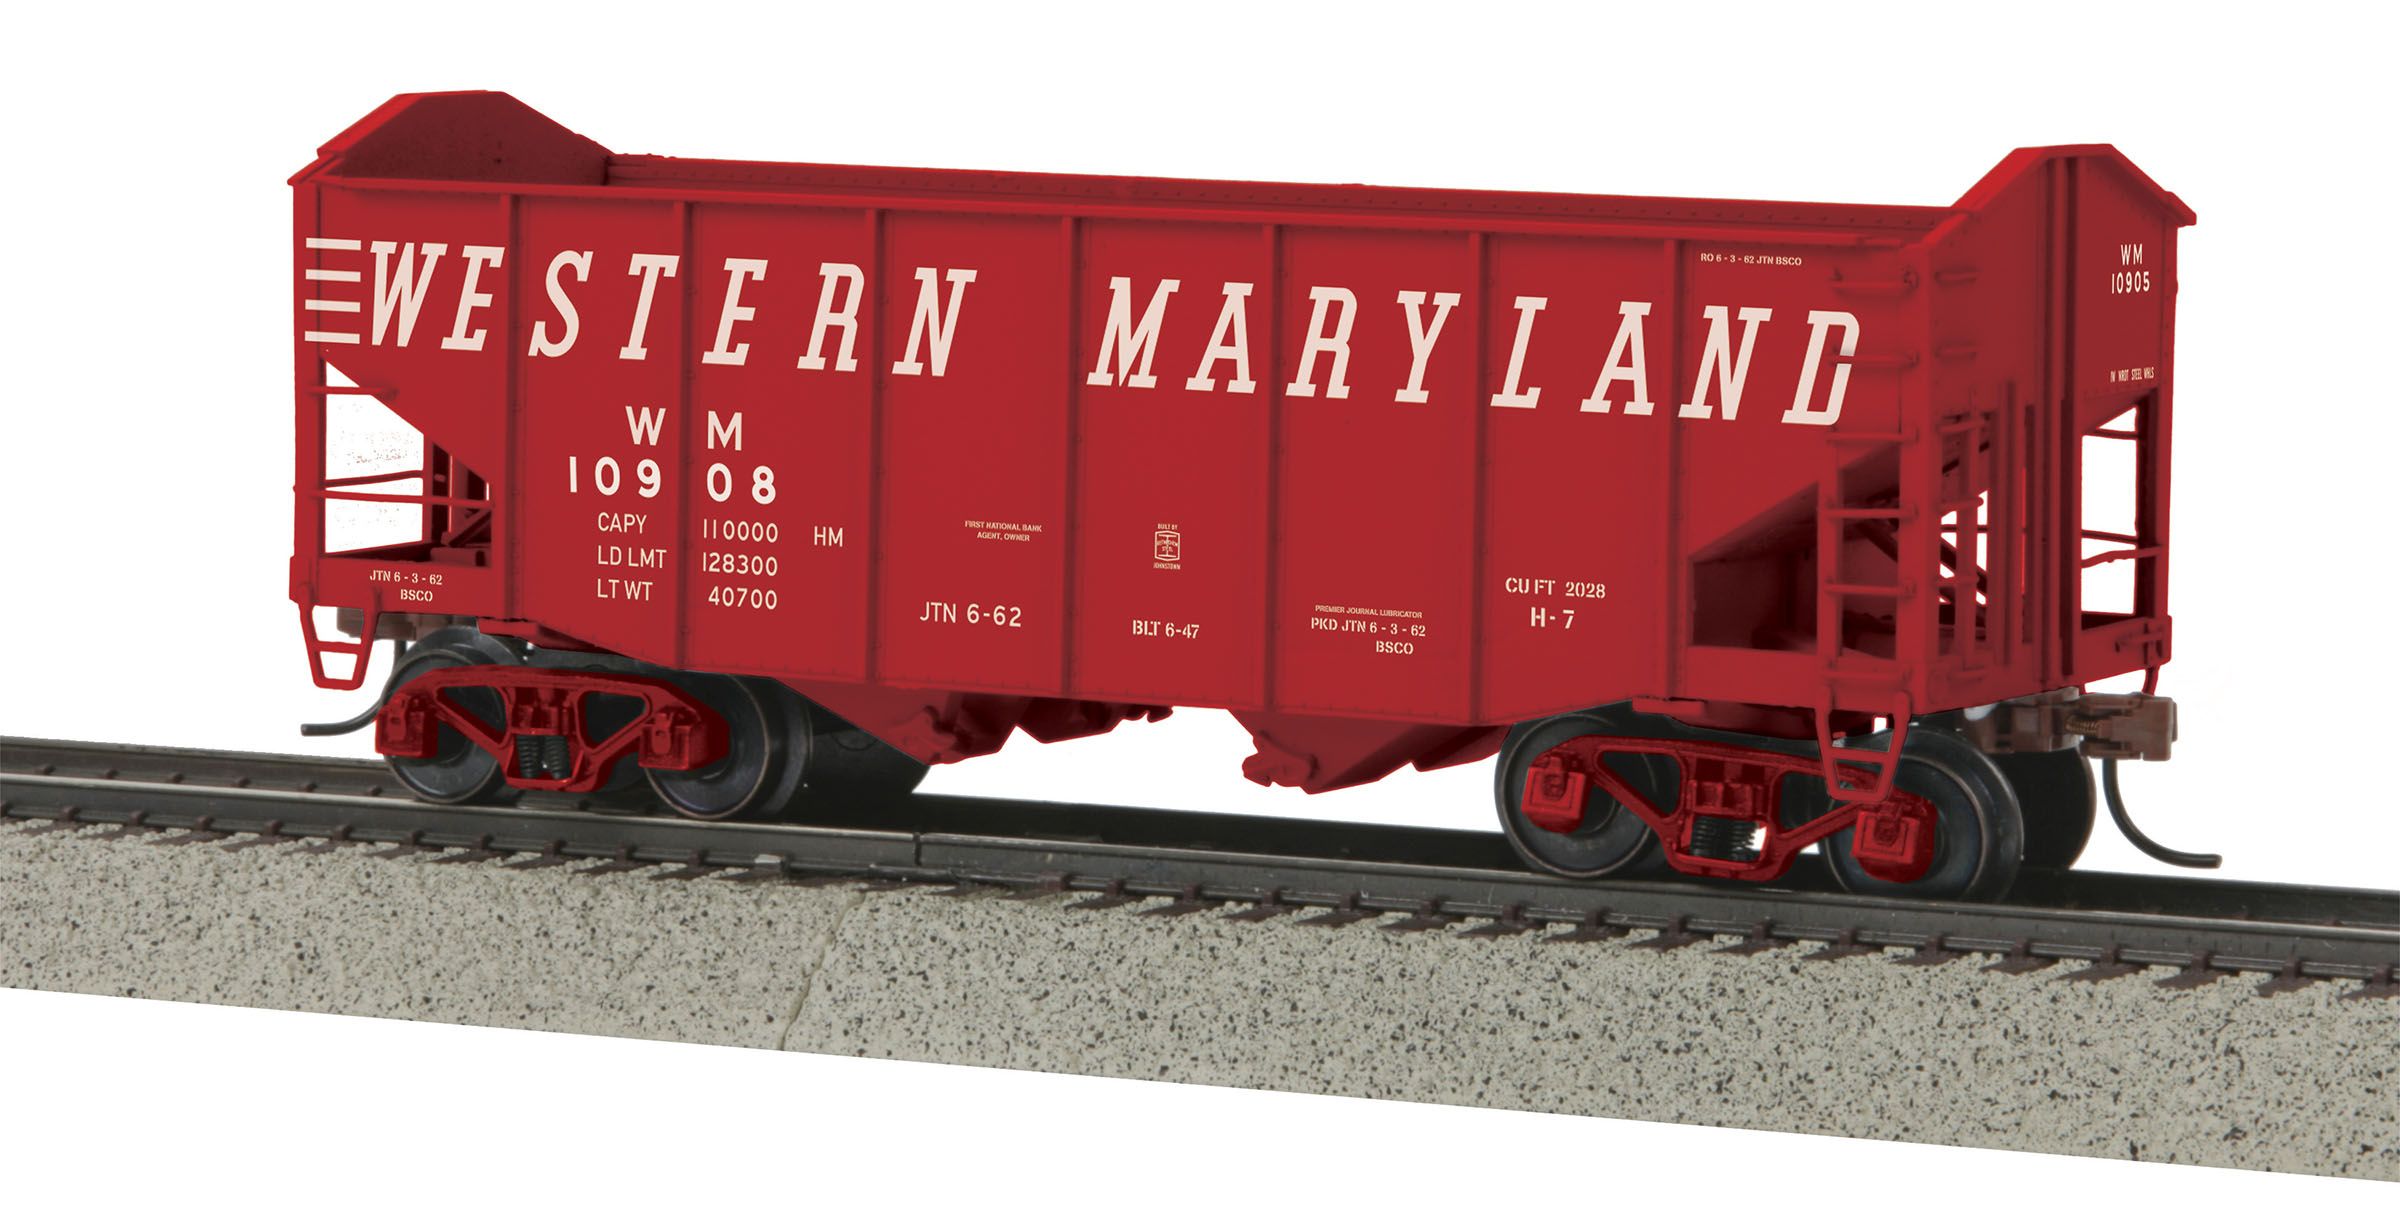 MTH 3575069 2Bay Fish Belly Hopper Car Hi-Rail Wheel WM #10908